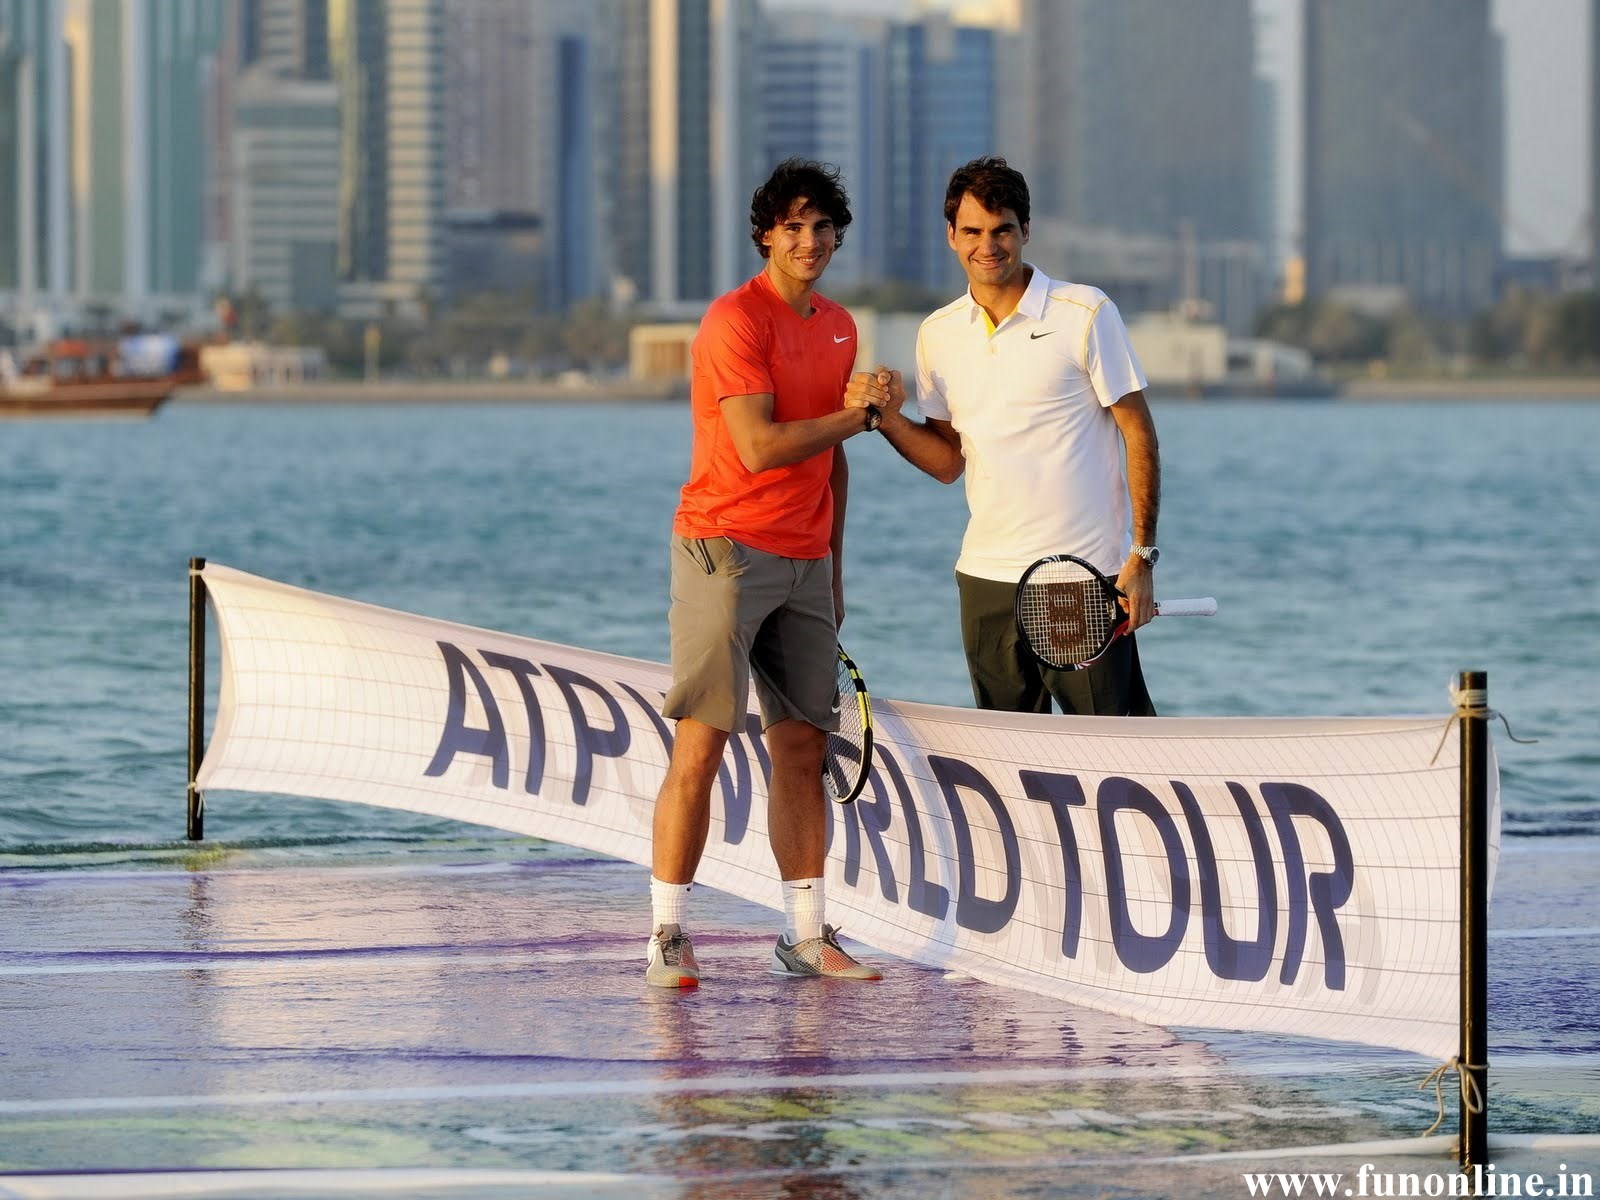 Rafael Nadal with Roger Federer in ATP World Tour Wallpaper 1600x1200